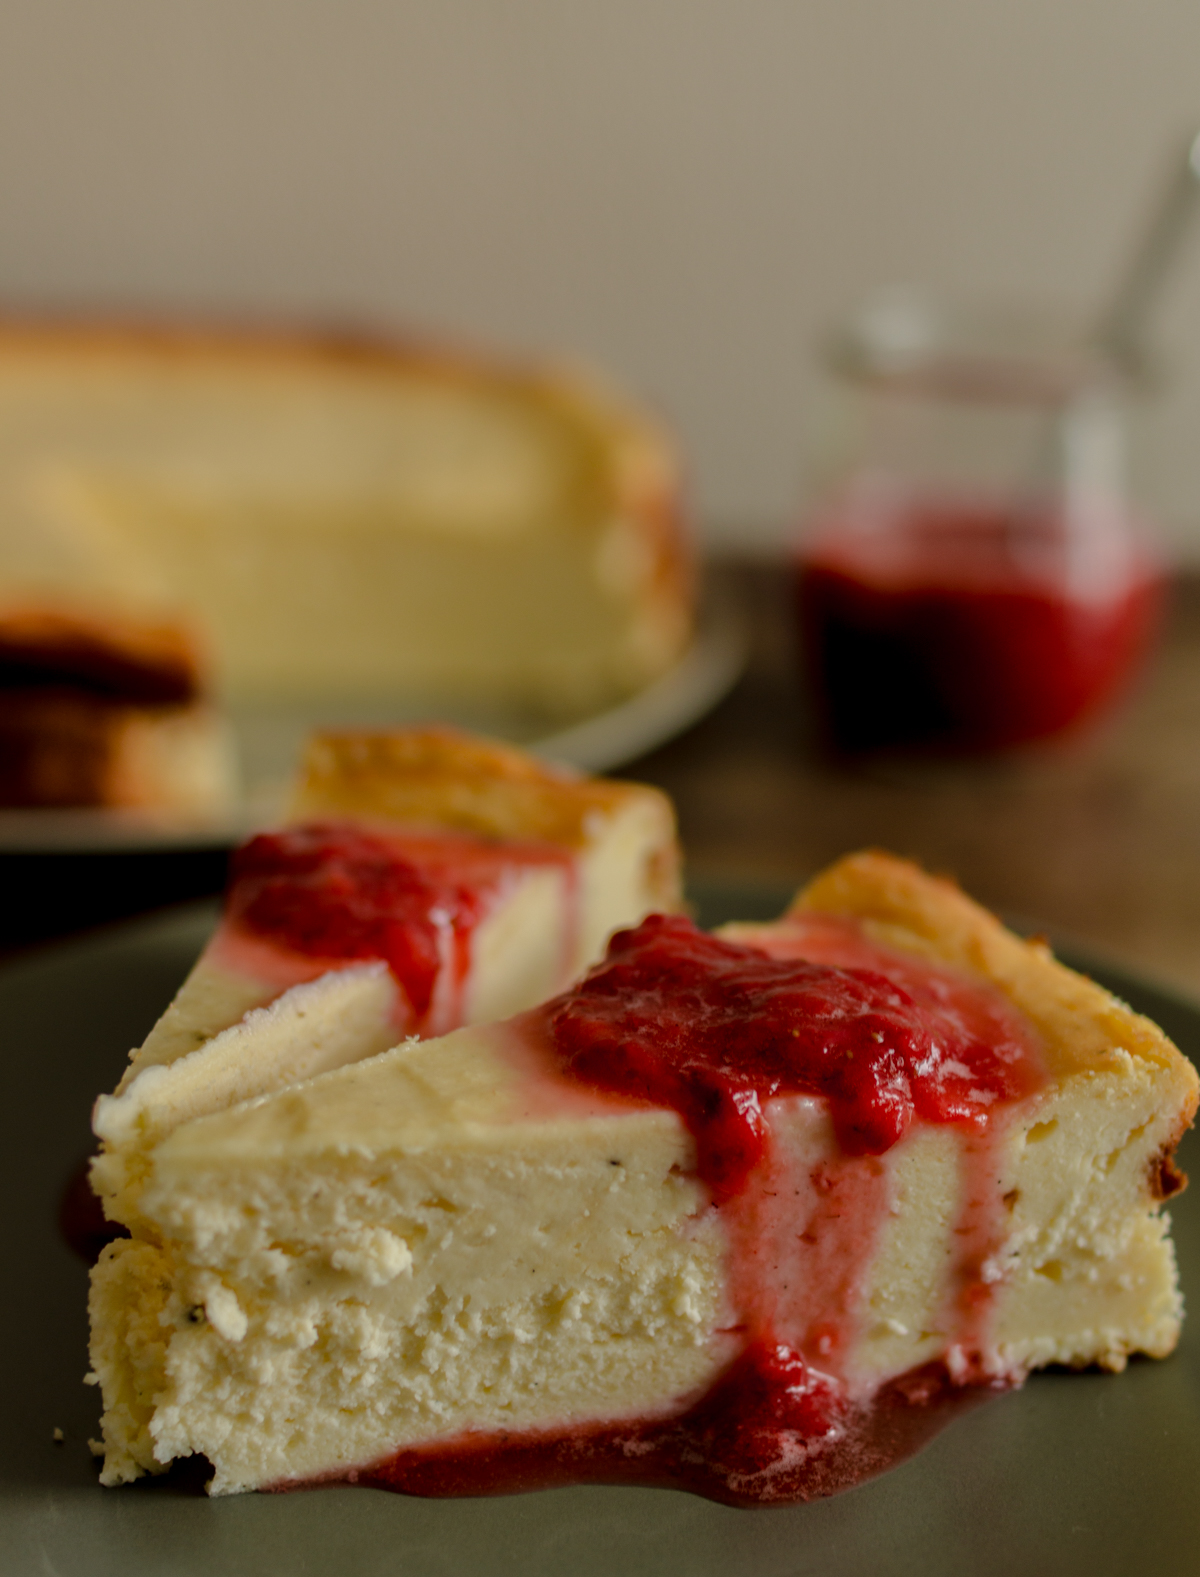 fluffiger k sekuchen ohne boden lieberbacken. Black Bedroom Furniture Sets. Home Design Ideas